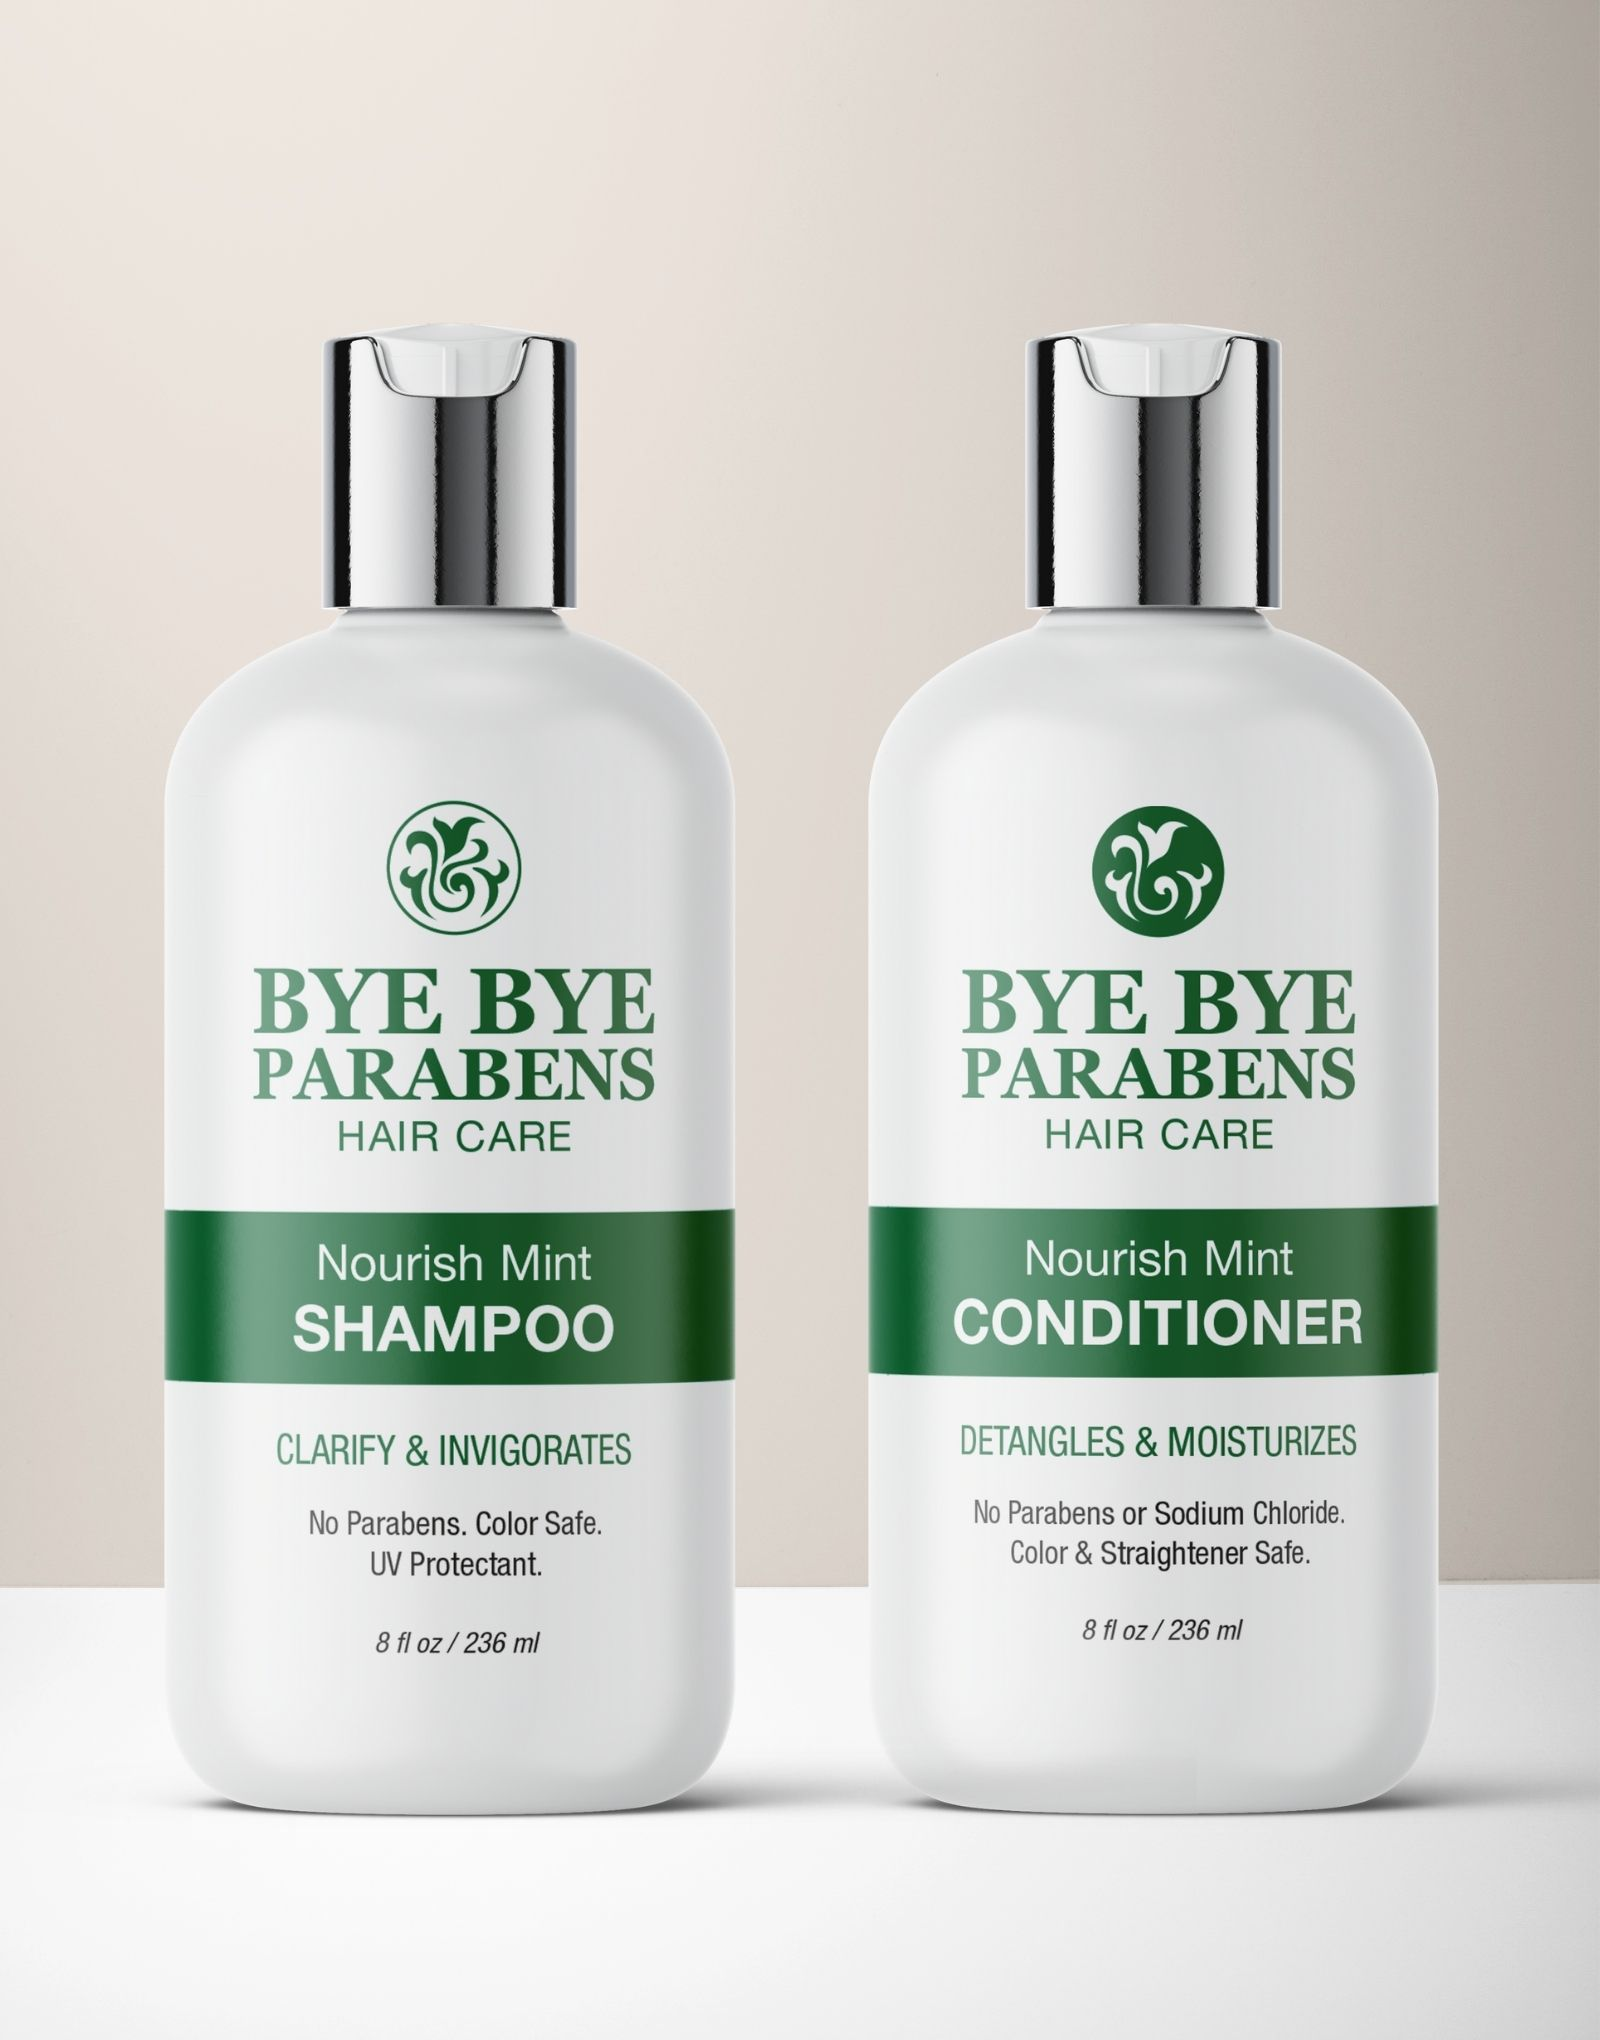 Nourish Mint Shampoo Conditioner hair products for curly hair | Bye Bye Parabens